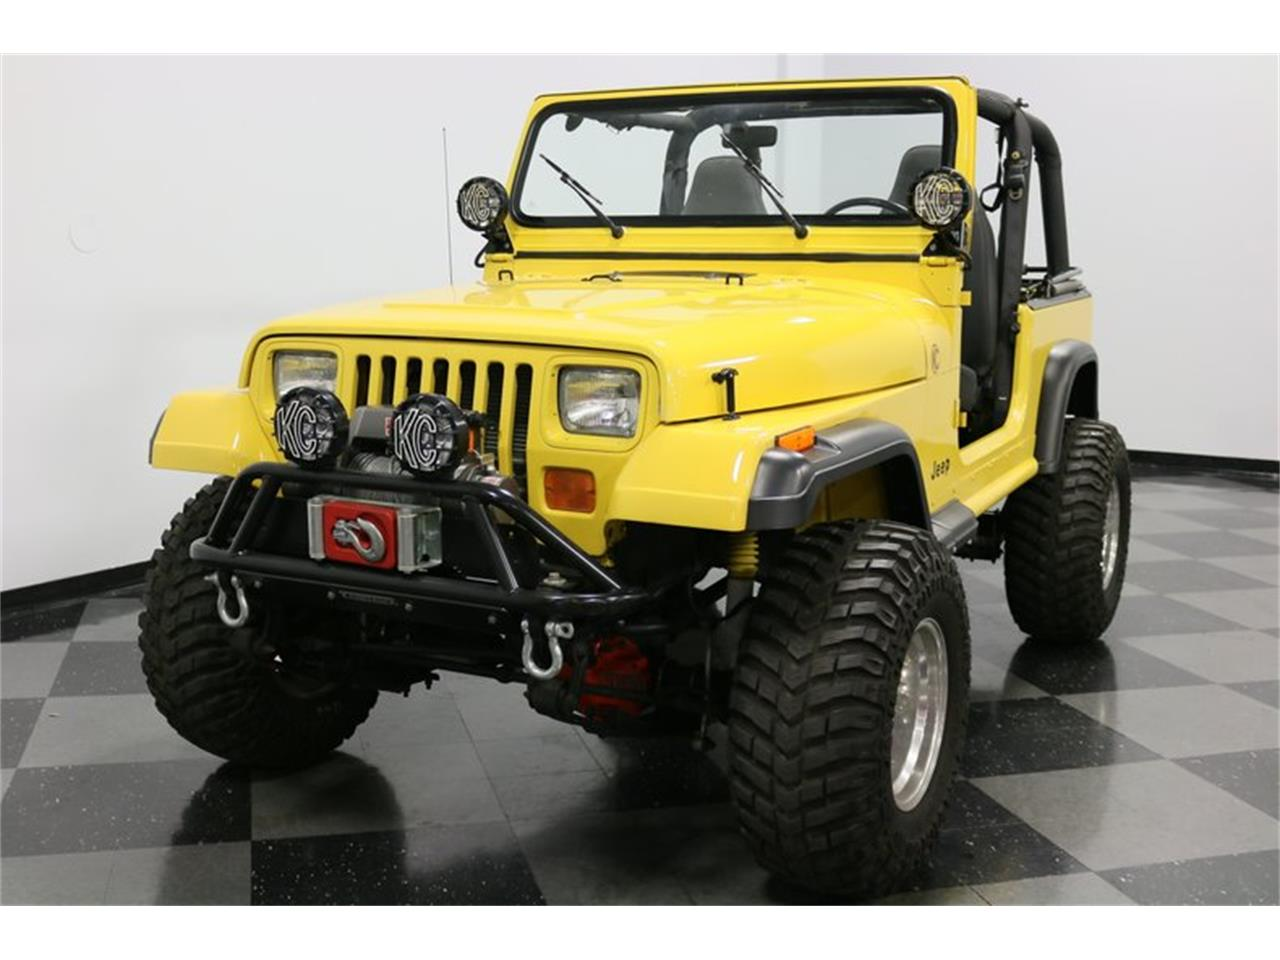 Large Picture of 1993 Wrangler - $25,995.00 Offered by Streetside Classics - Dallas / Fort Worth - P701